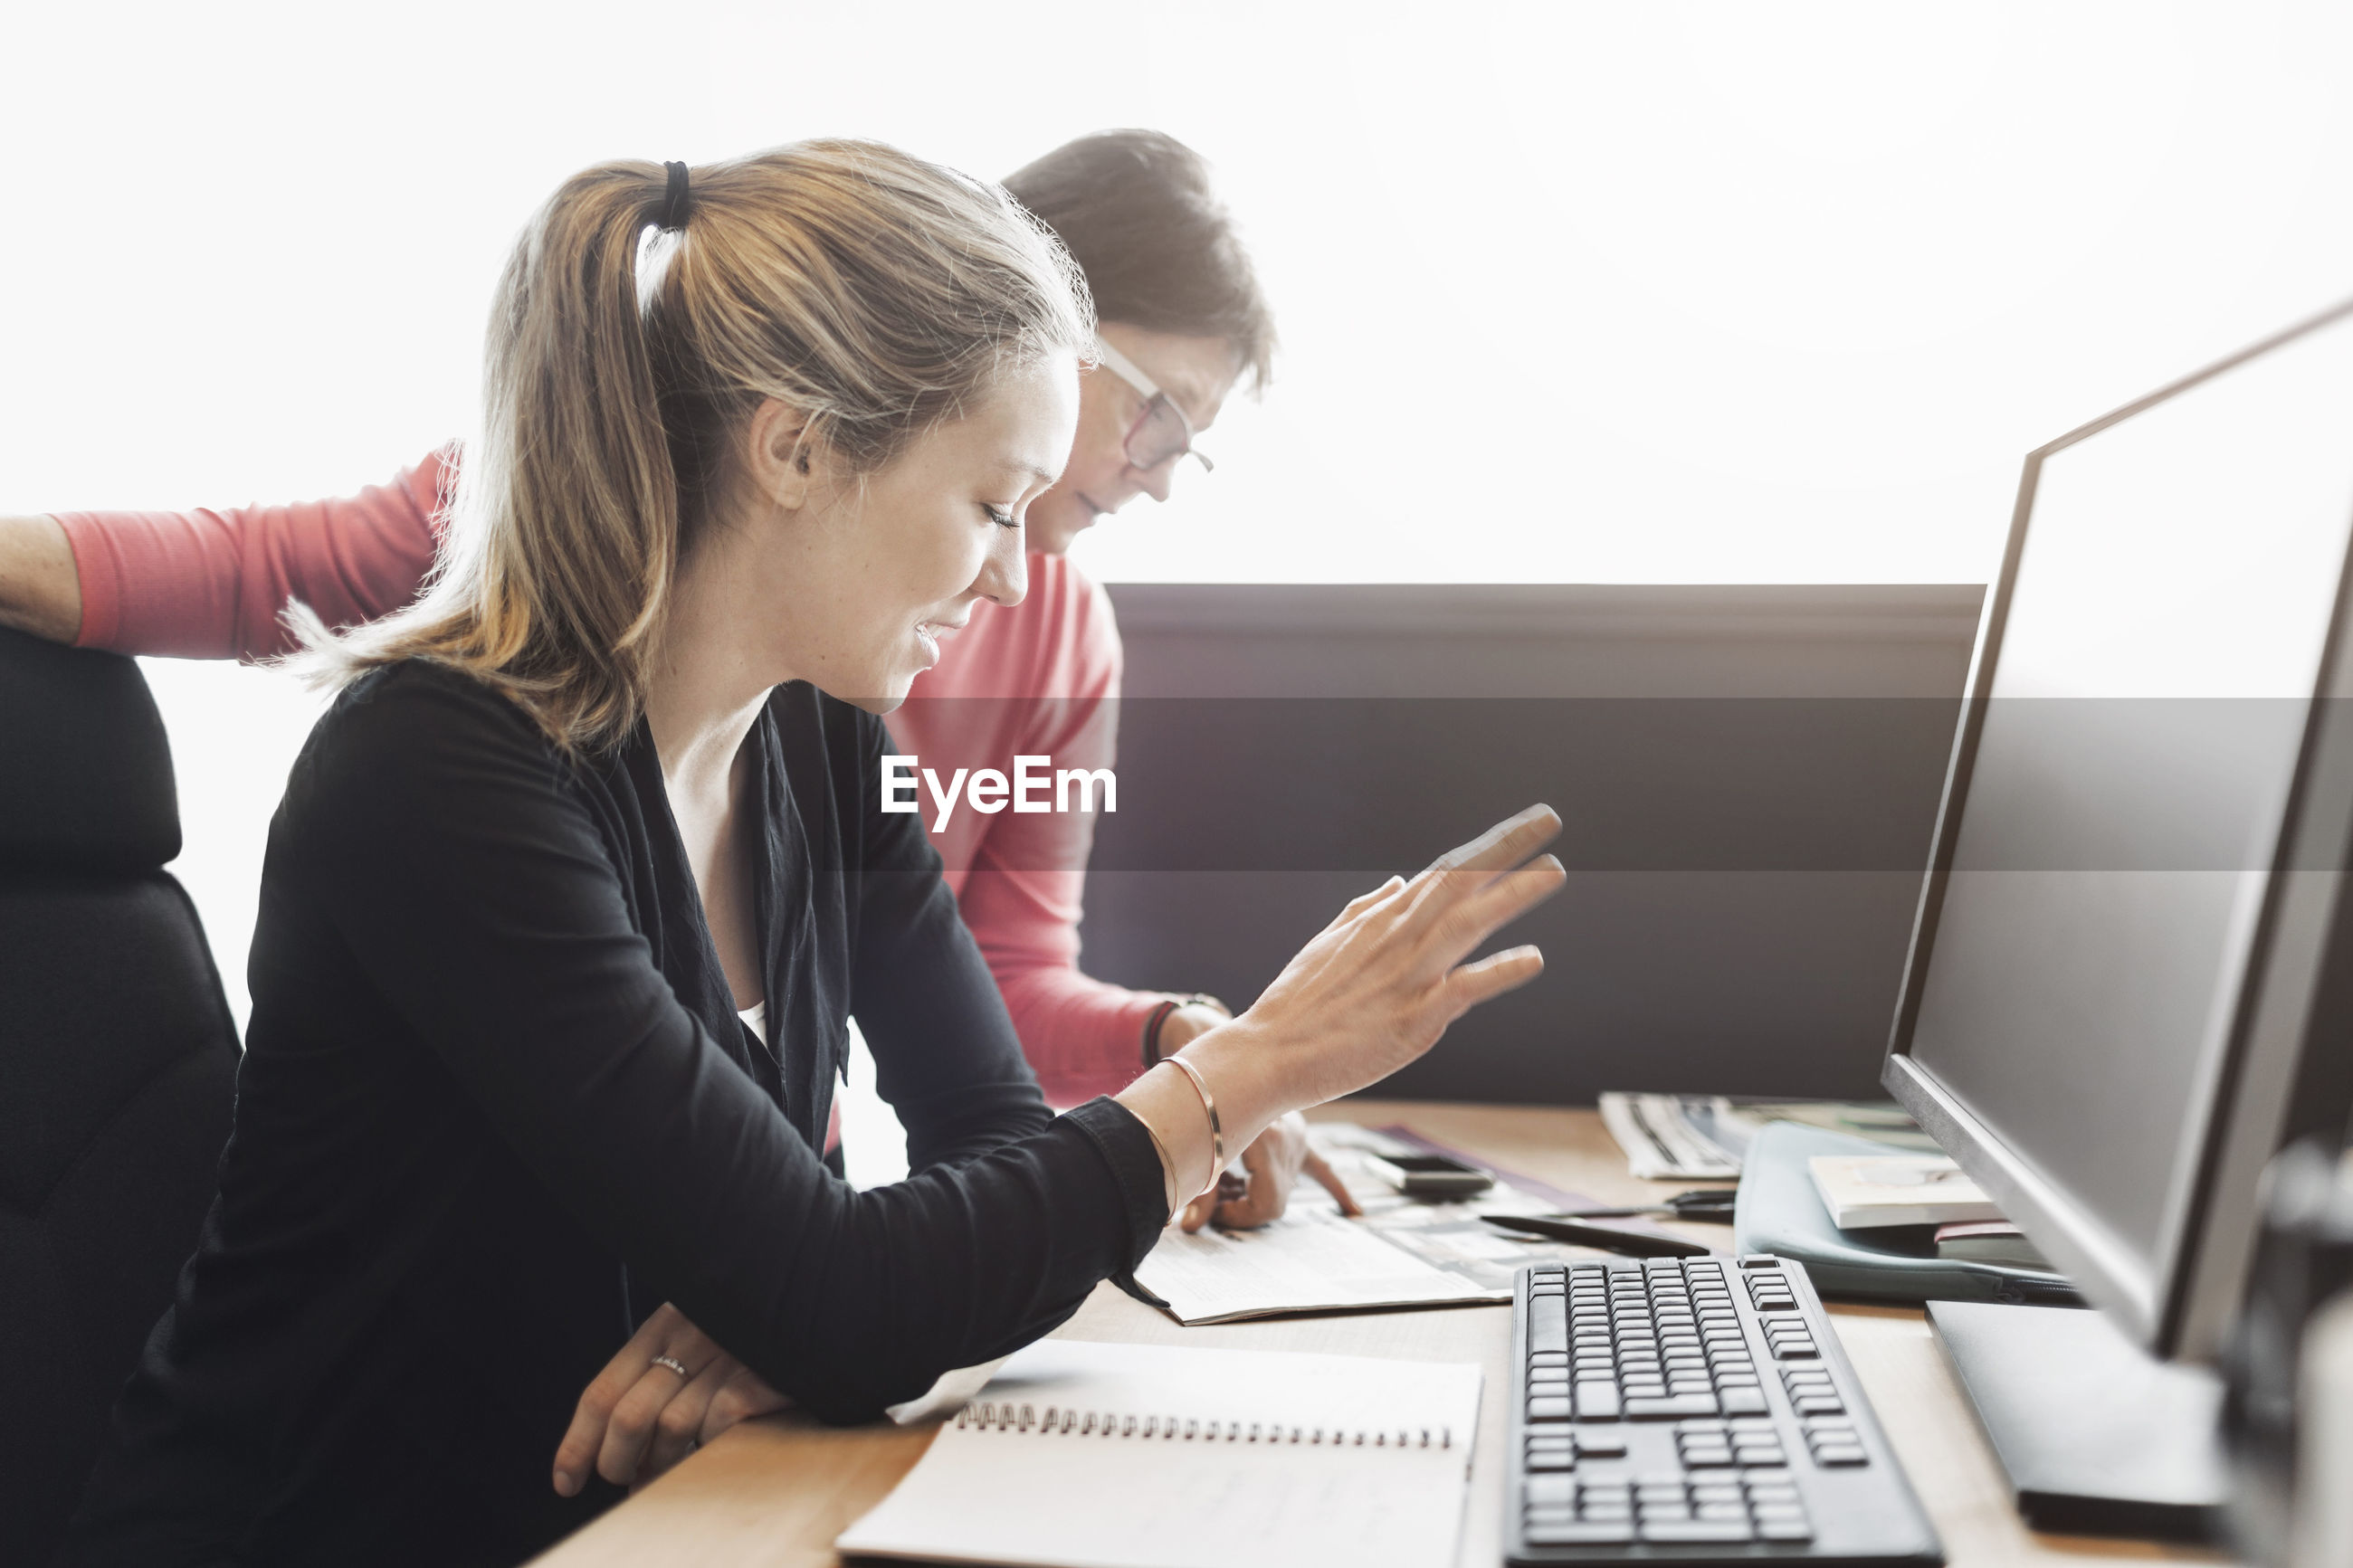 WOMAN USING MOBILE PHONE WHILE SITTING IN OFFICE